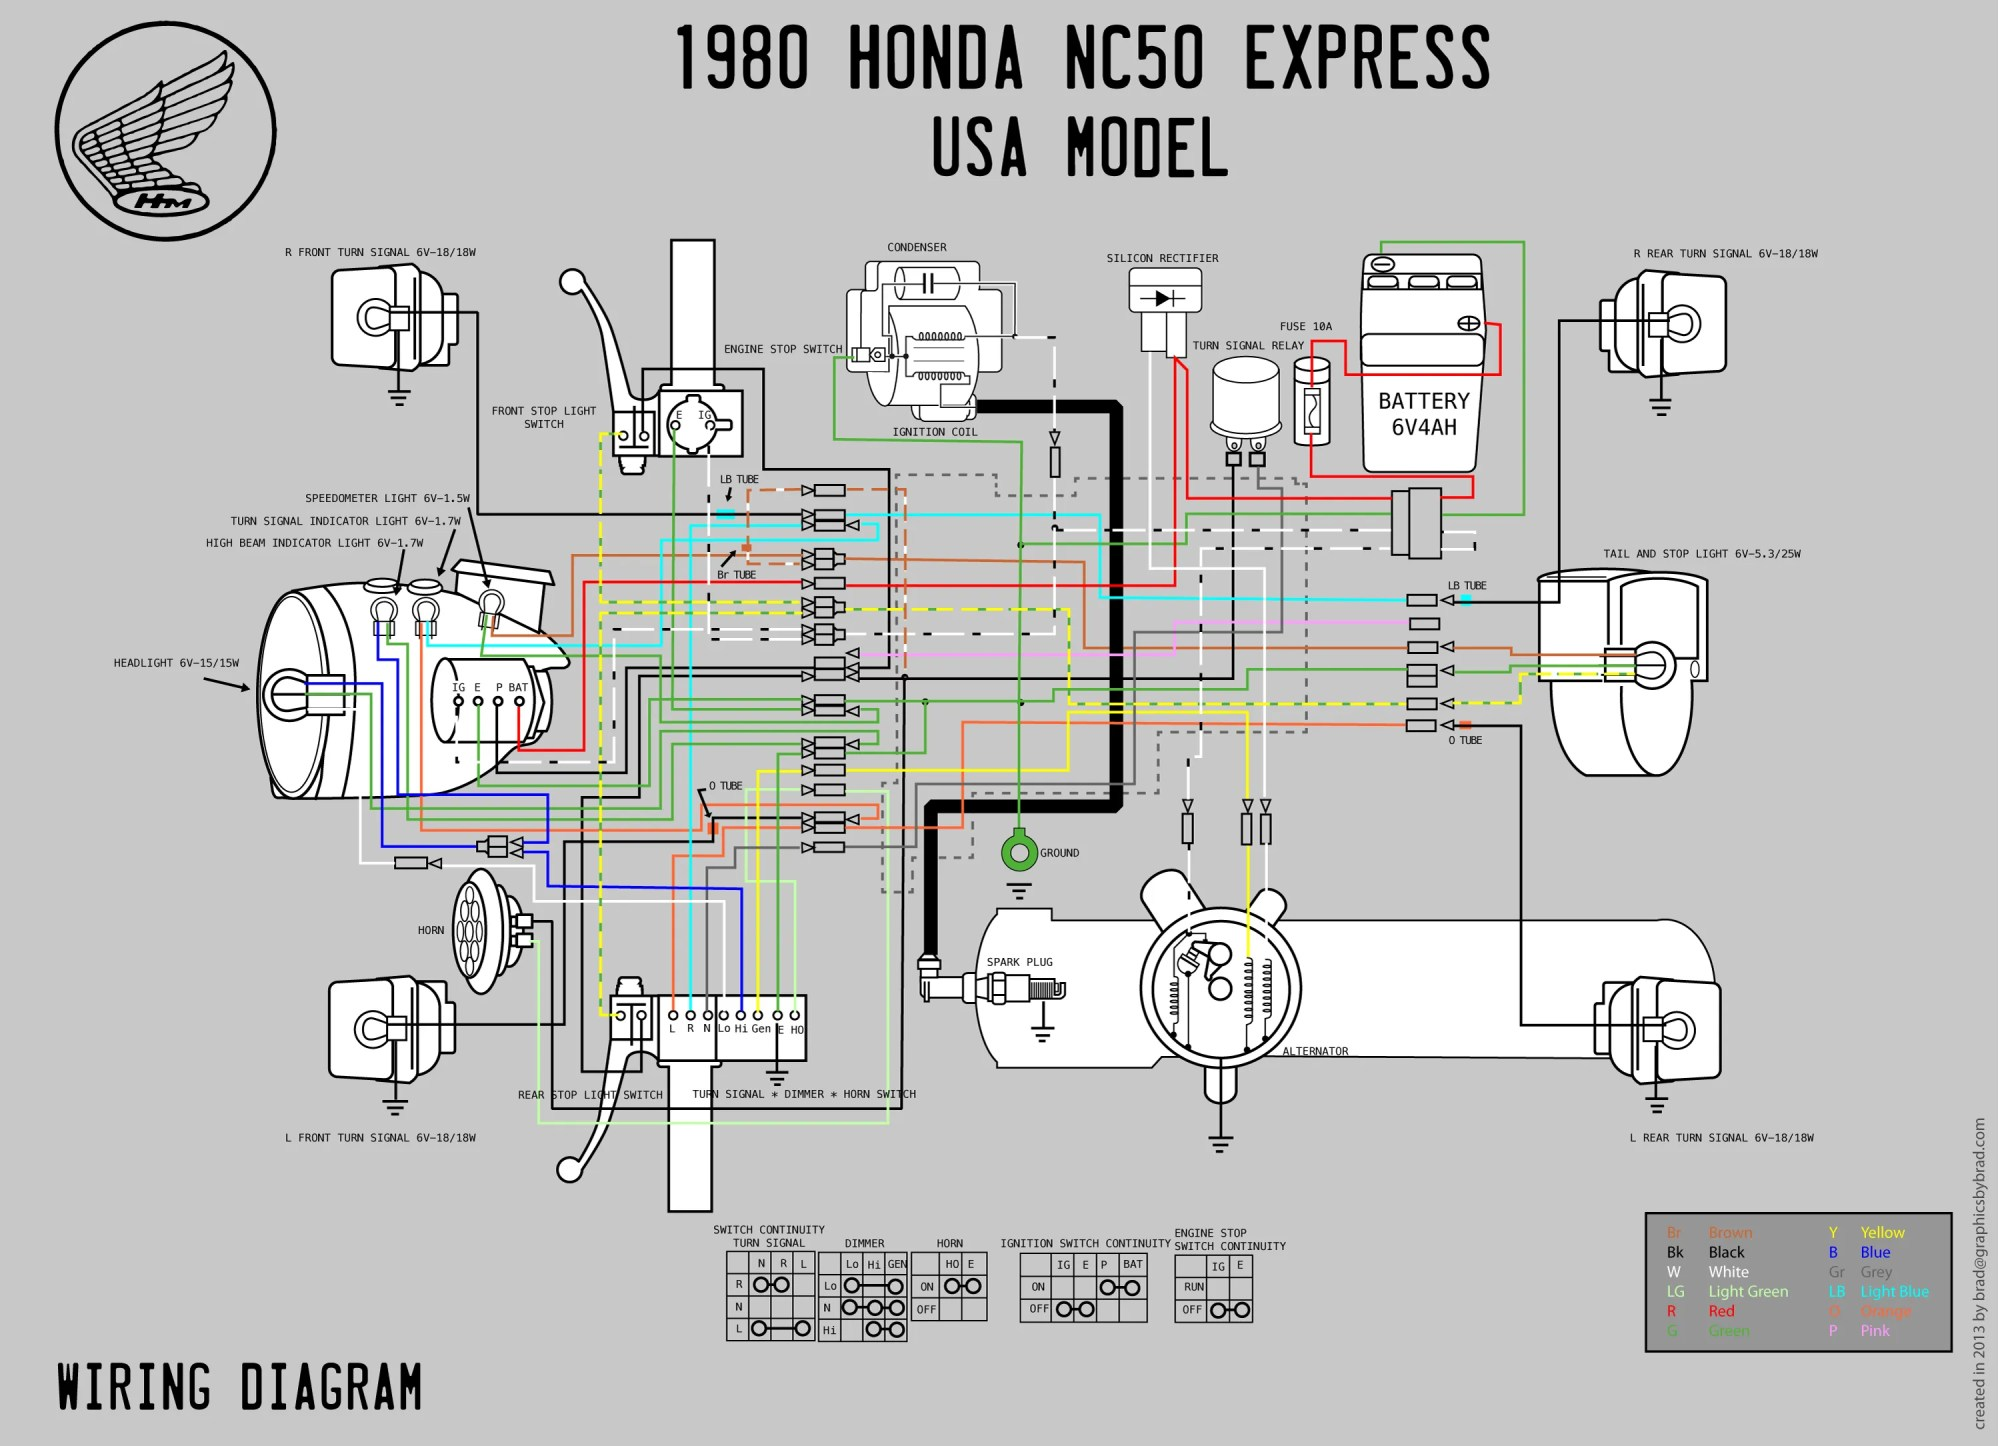 hight resolution of 1980 honda nc50 wiring diagram moped wiki 2000 honda accord 4 cylinder wiring schematic honda wiring schematics